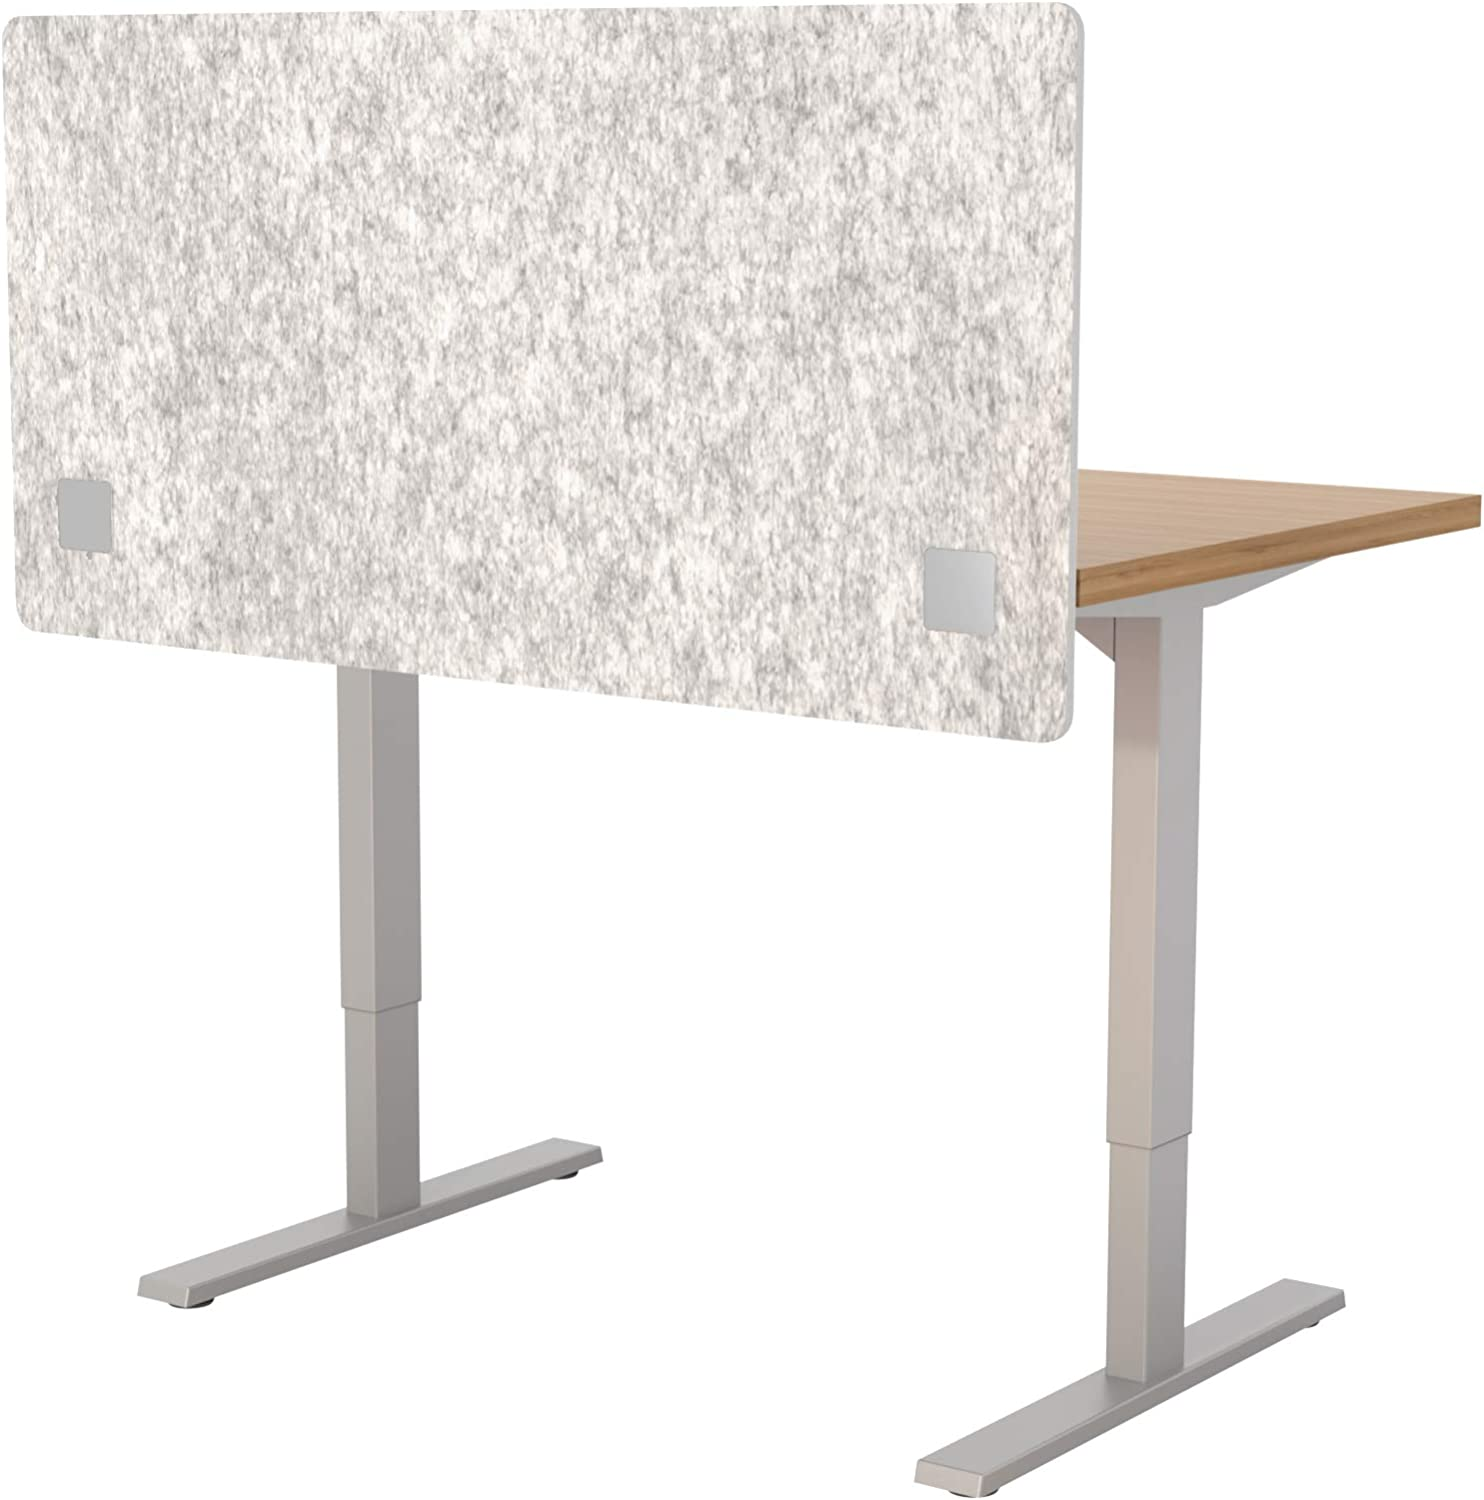 """VaRoom Acoustic Partition, Sound Absorbing Desk Divider – 48"""" W x 24""""H Privacy Desk Mounted Cubicle Panel, Iced Grey"""